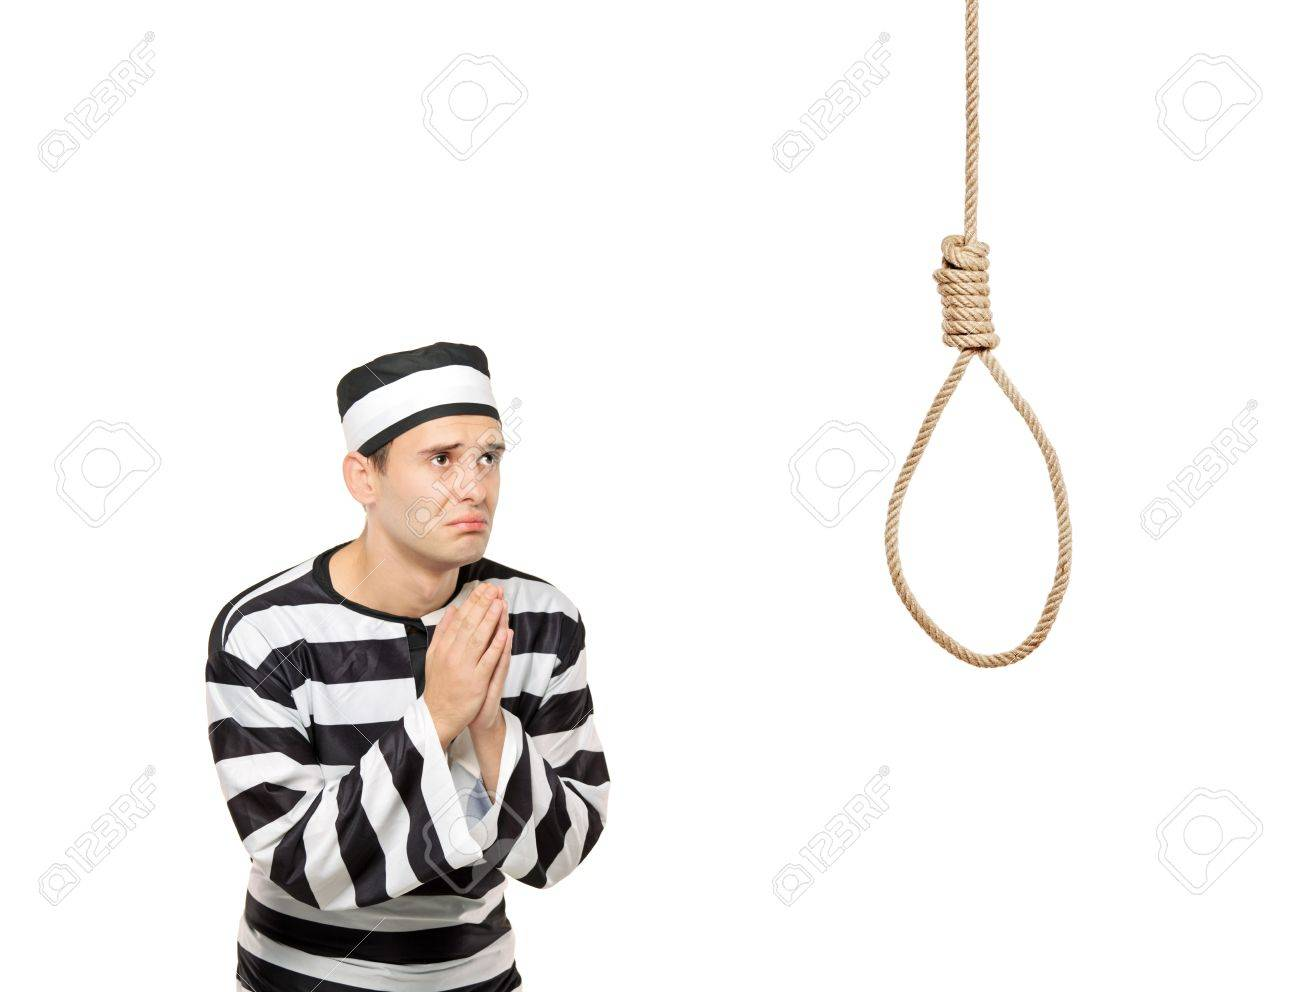 A sad prisoner with both hands clasp in begging gesture with a hanging noose against white background Stock Photo - 8038051